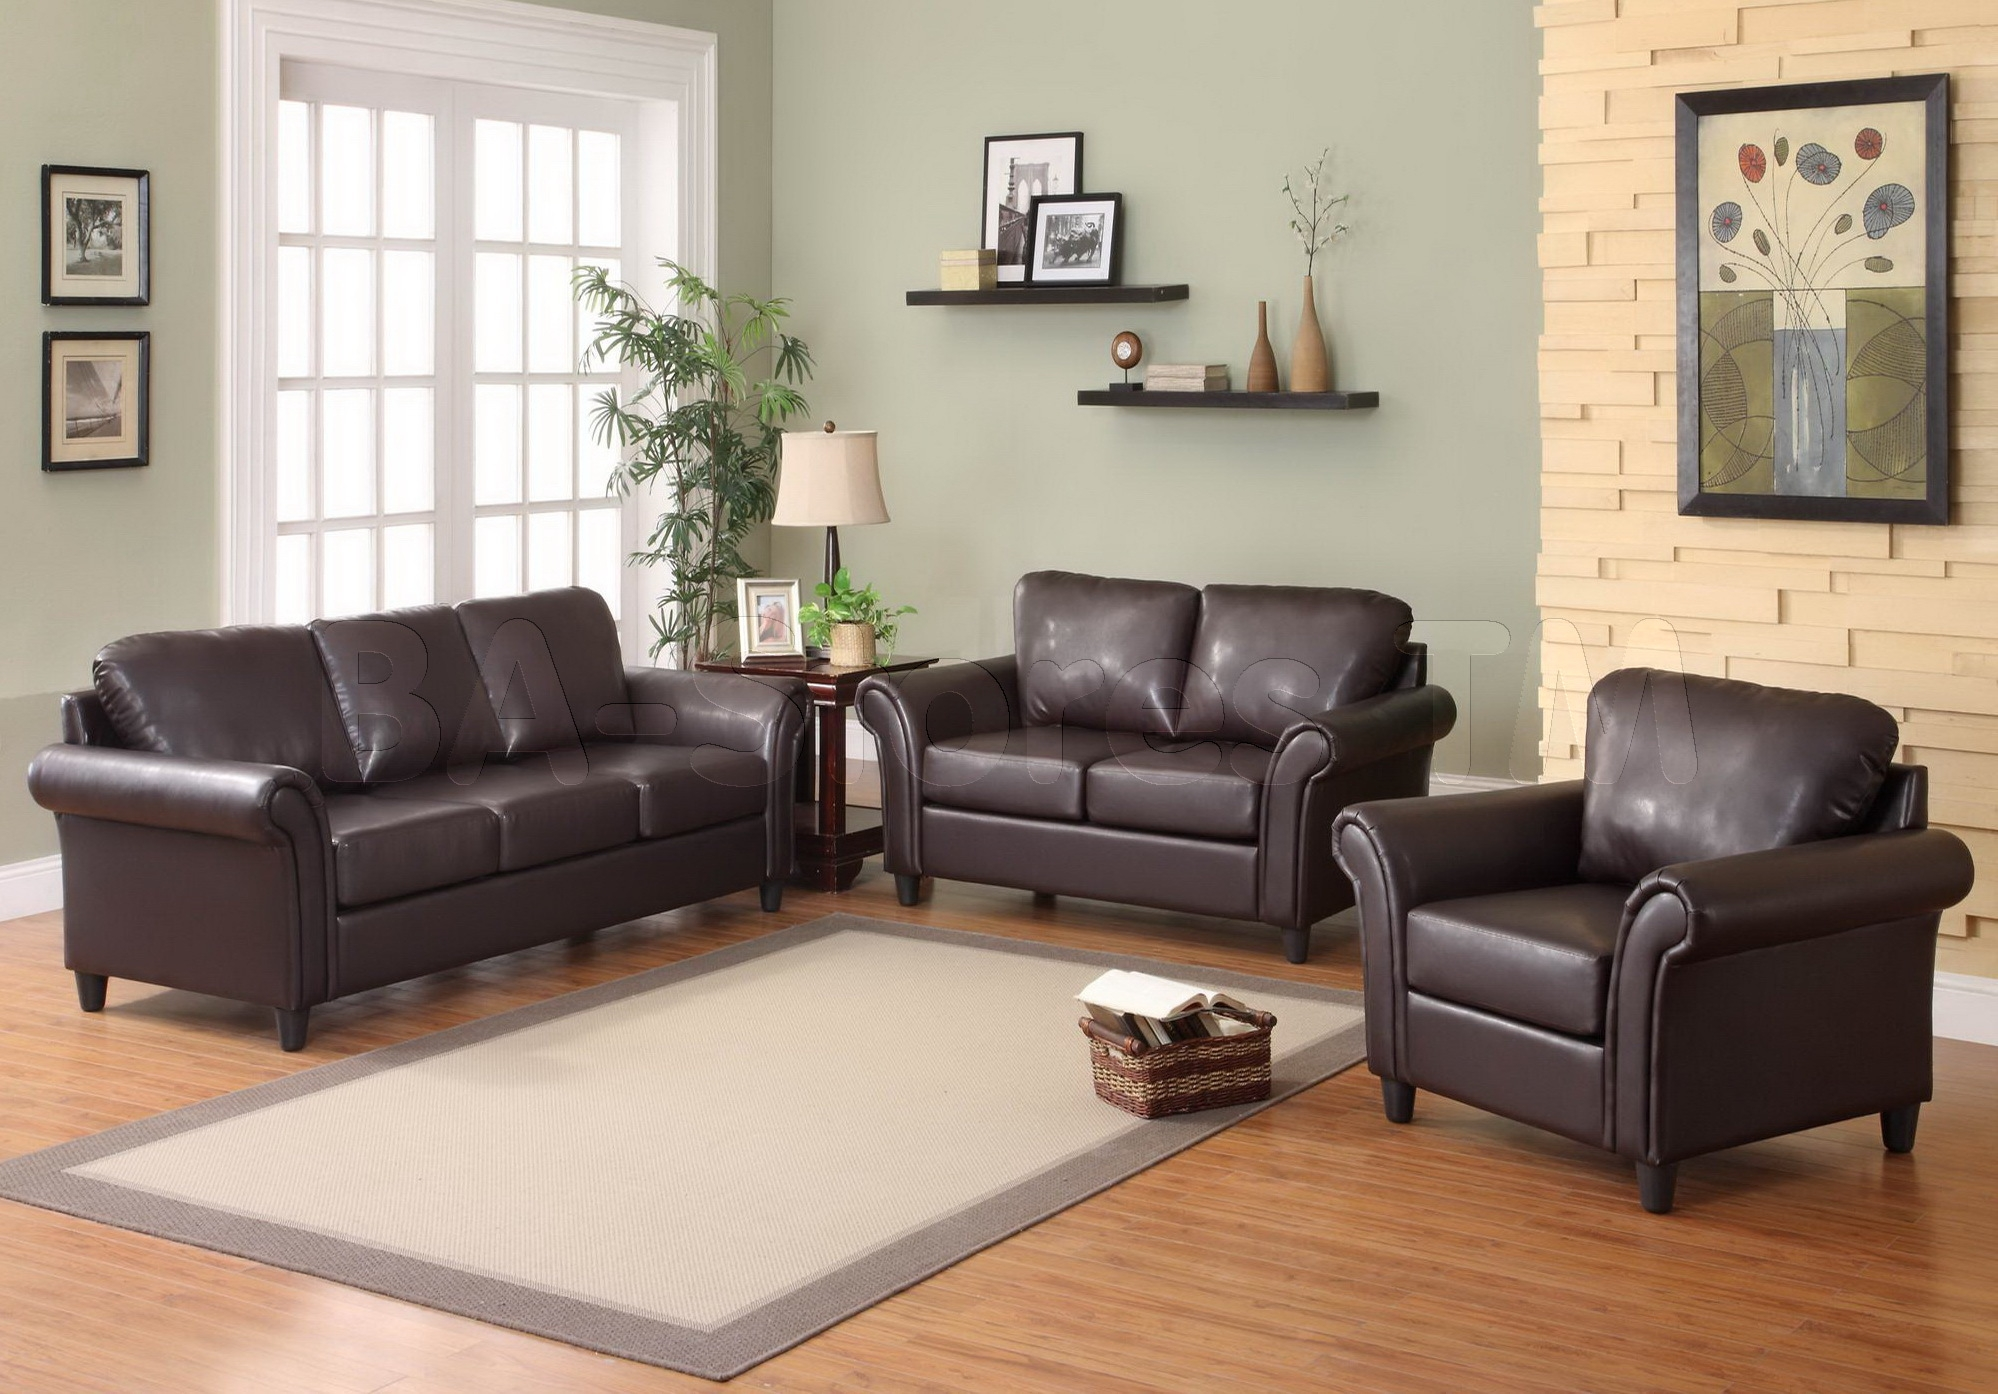 relaxing brown living room decorating ideas with dark brown leather sofa